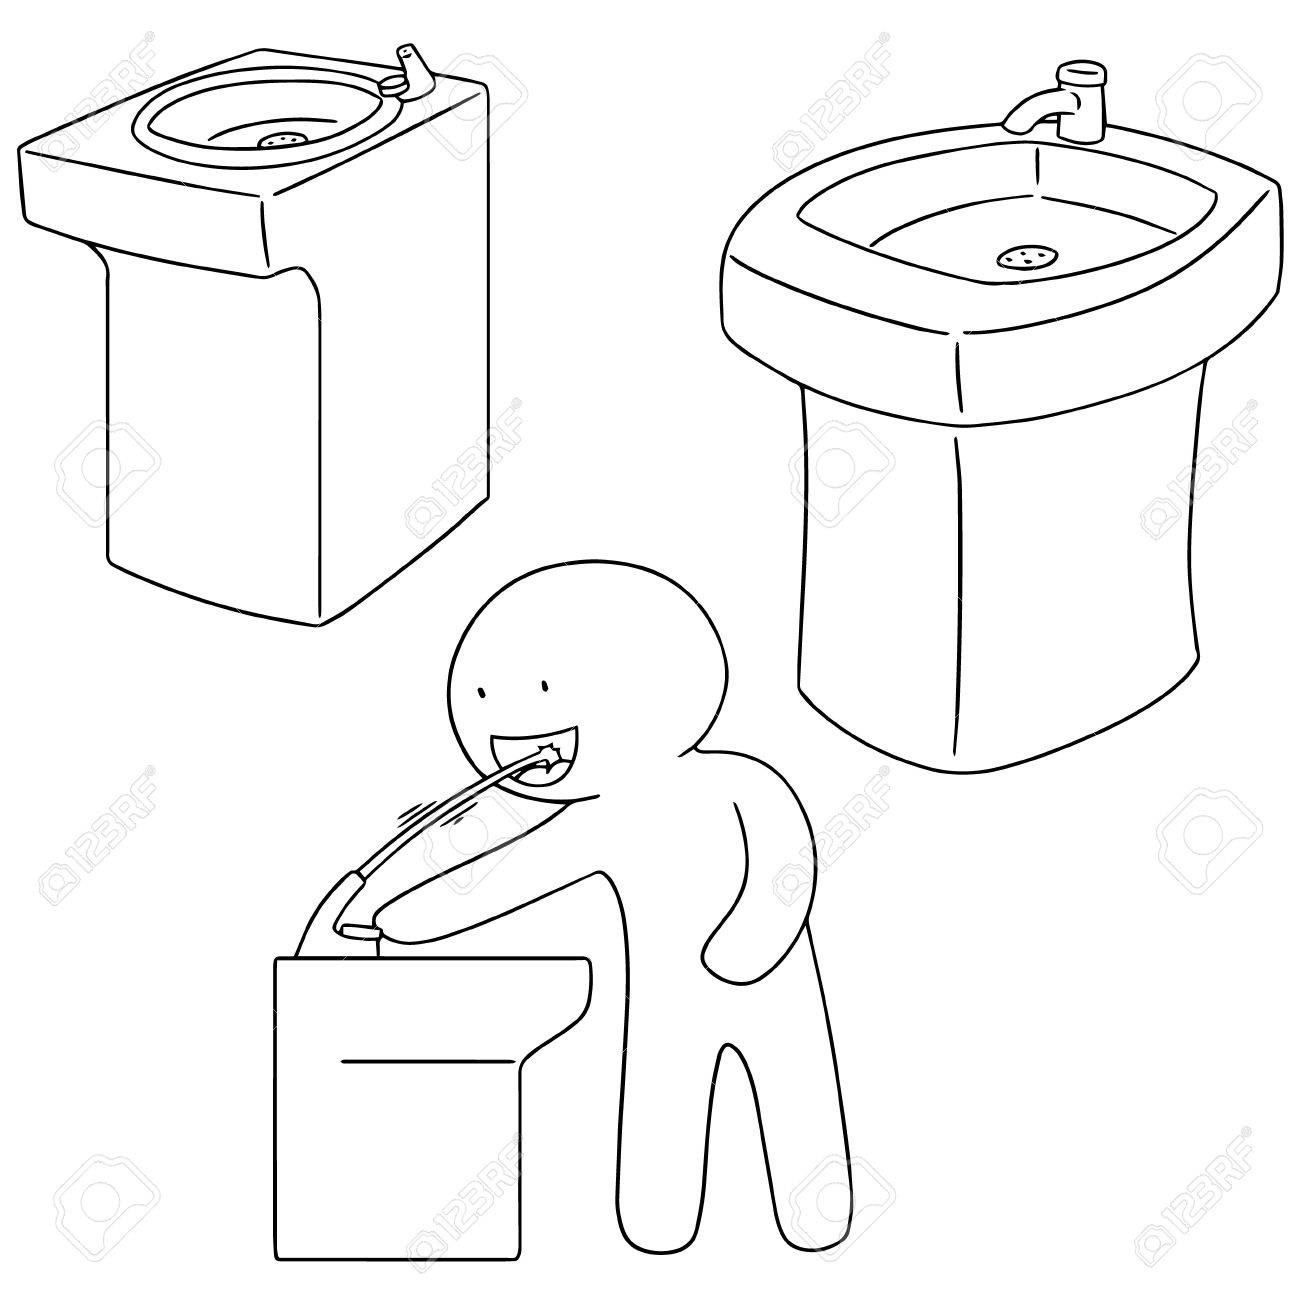 Drinking Fountain Drawing At Getdrawings